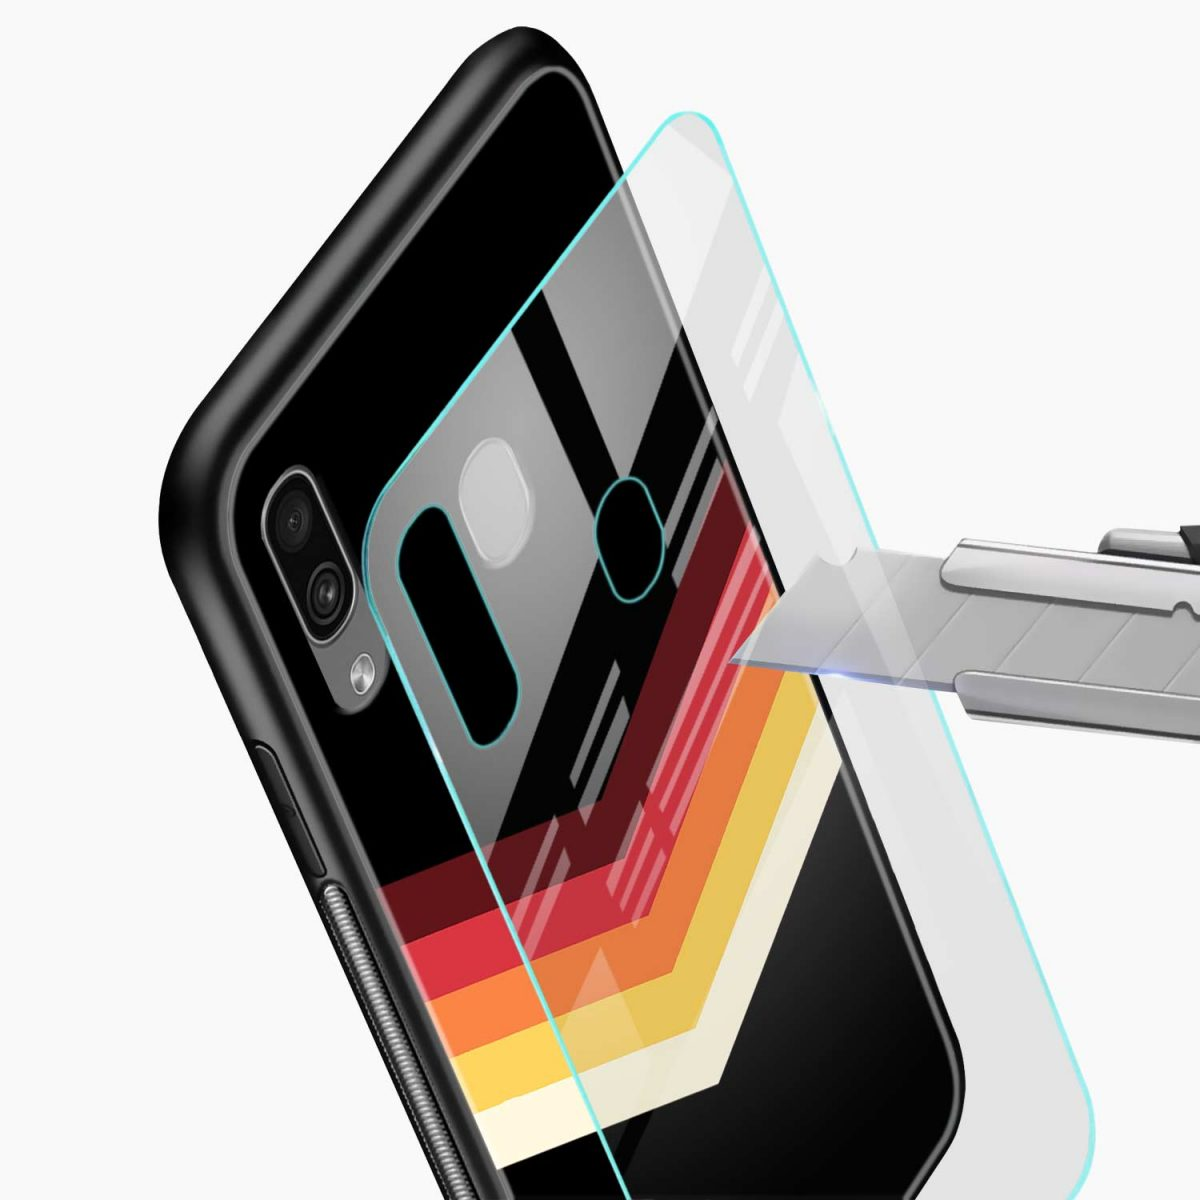 rewind strips pattern glass view samsung galaxy a30 back cover